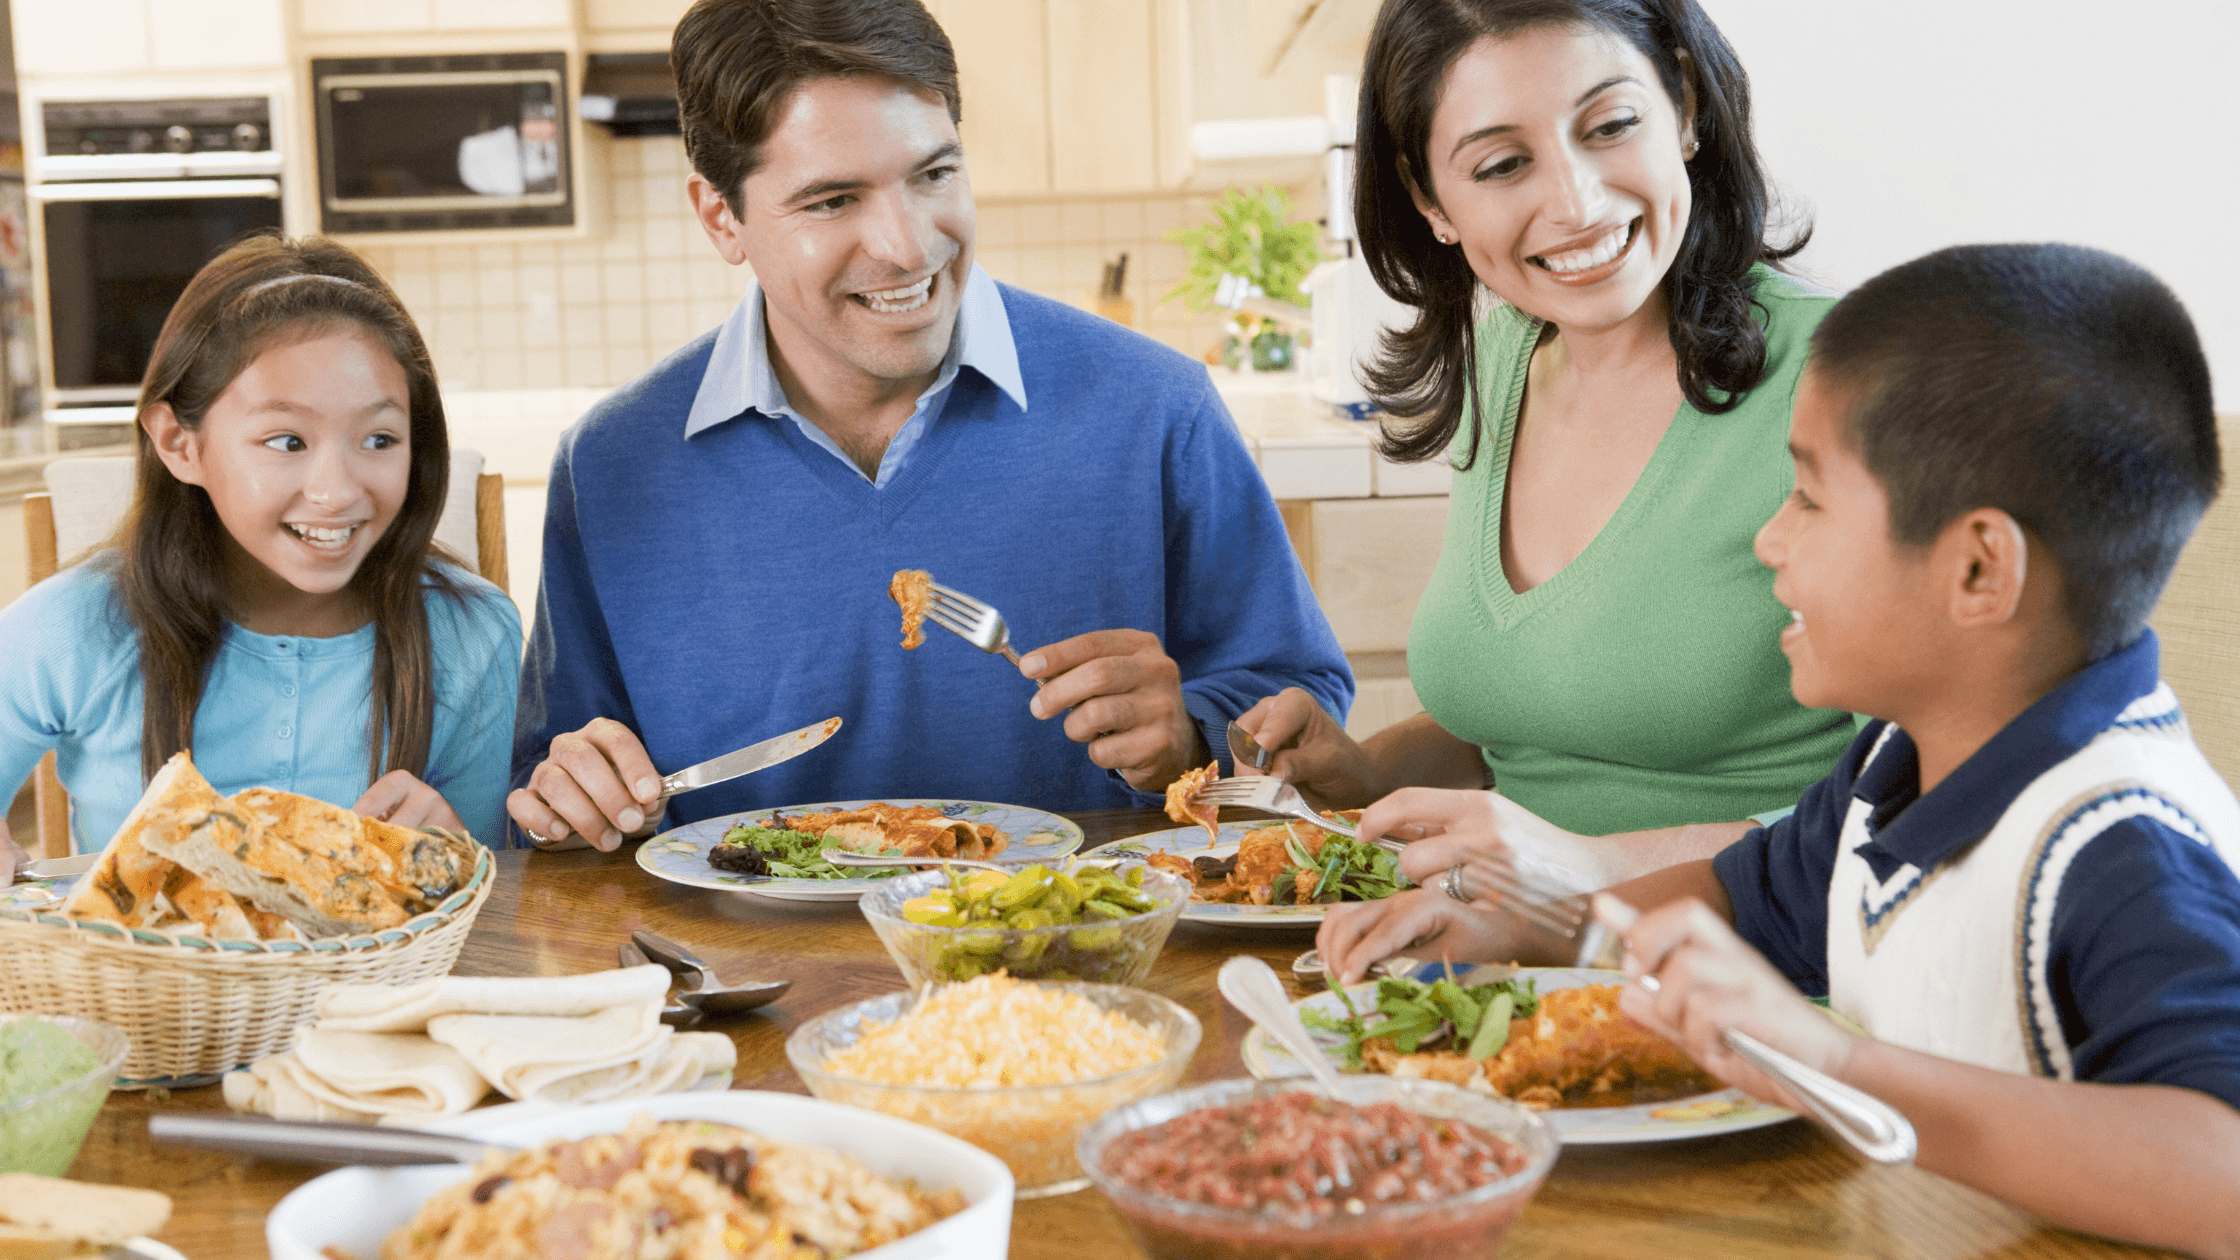 Hispanic family eating a meal and laughing